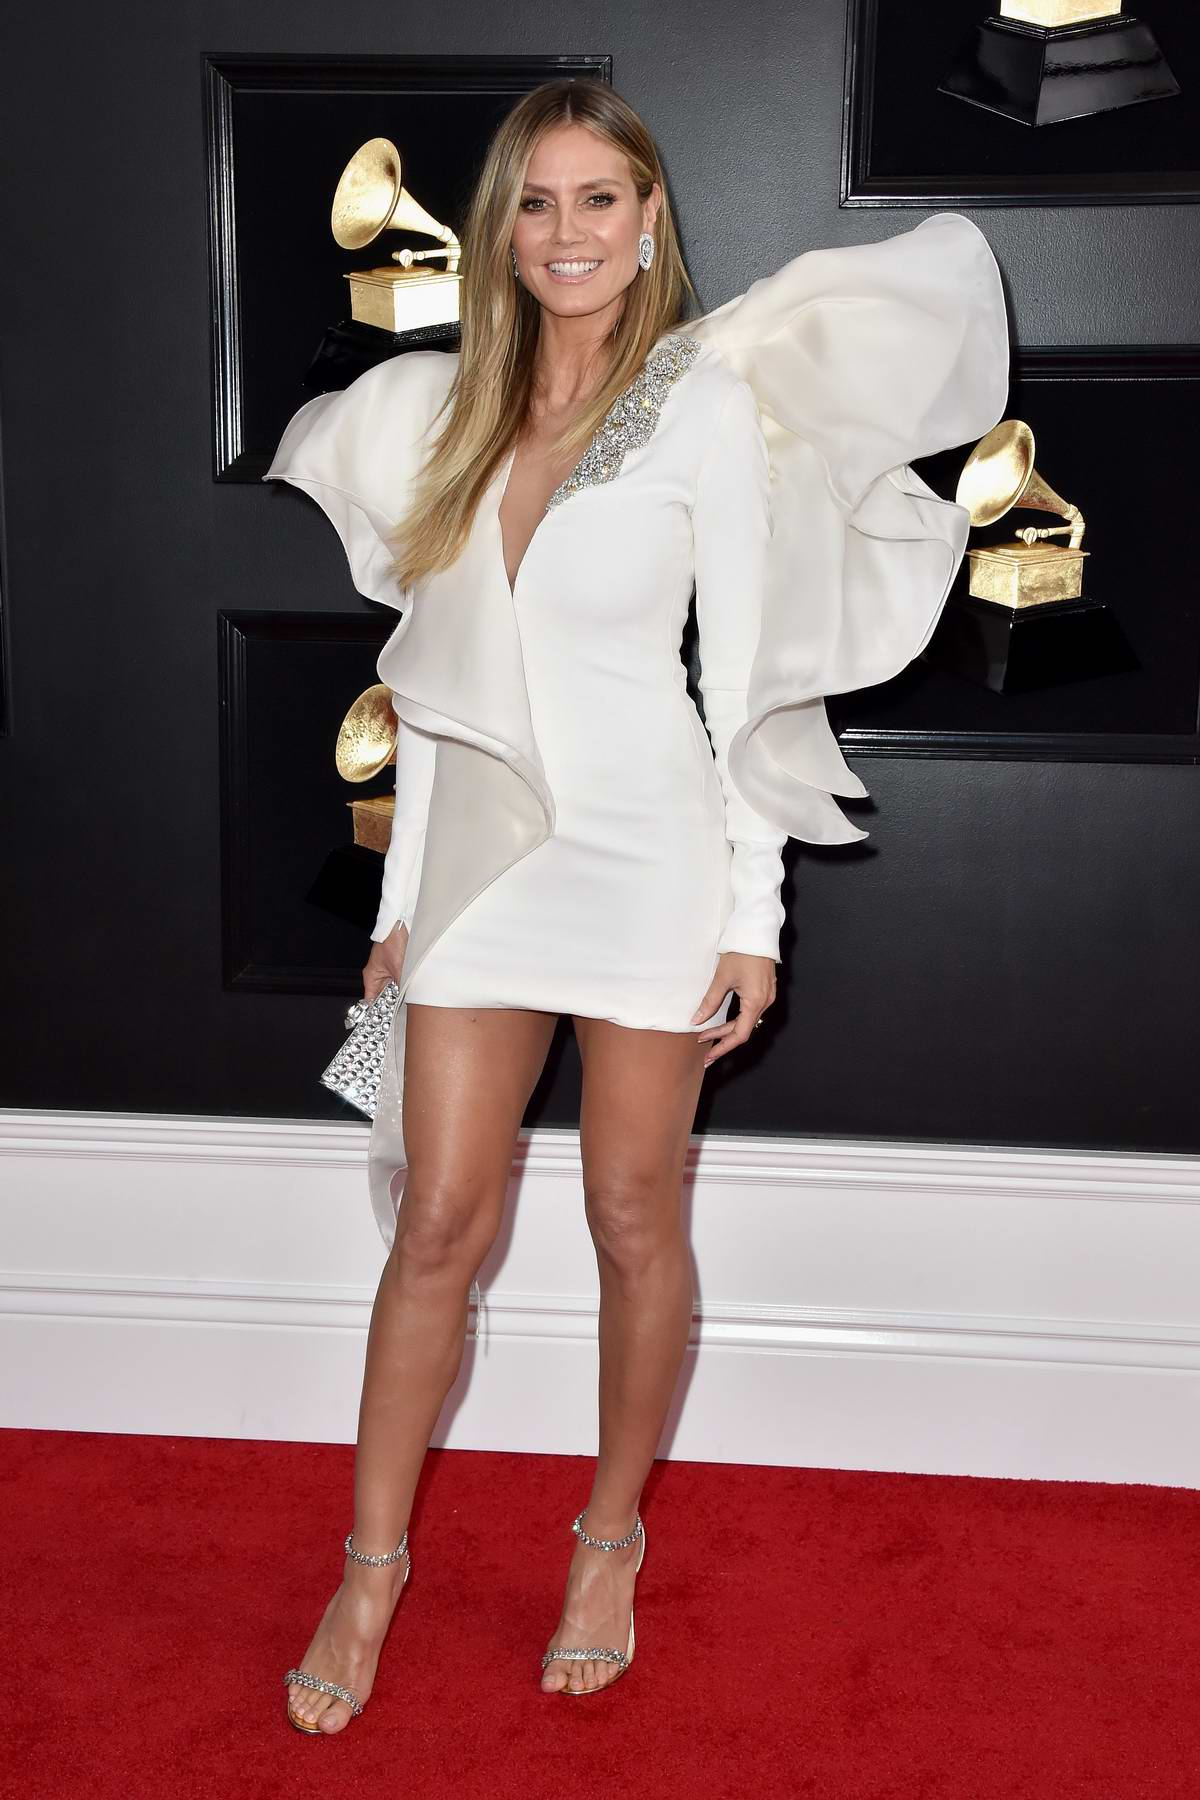 Heidi Klum attends the 61st Annual GRAMMY Awards (2019 GRAMMYs) at Staples Center in Los Angeles